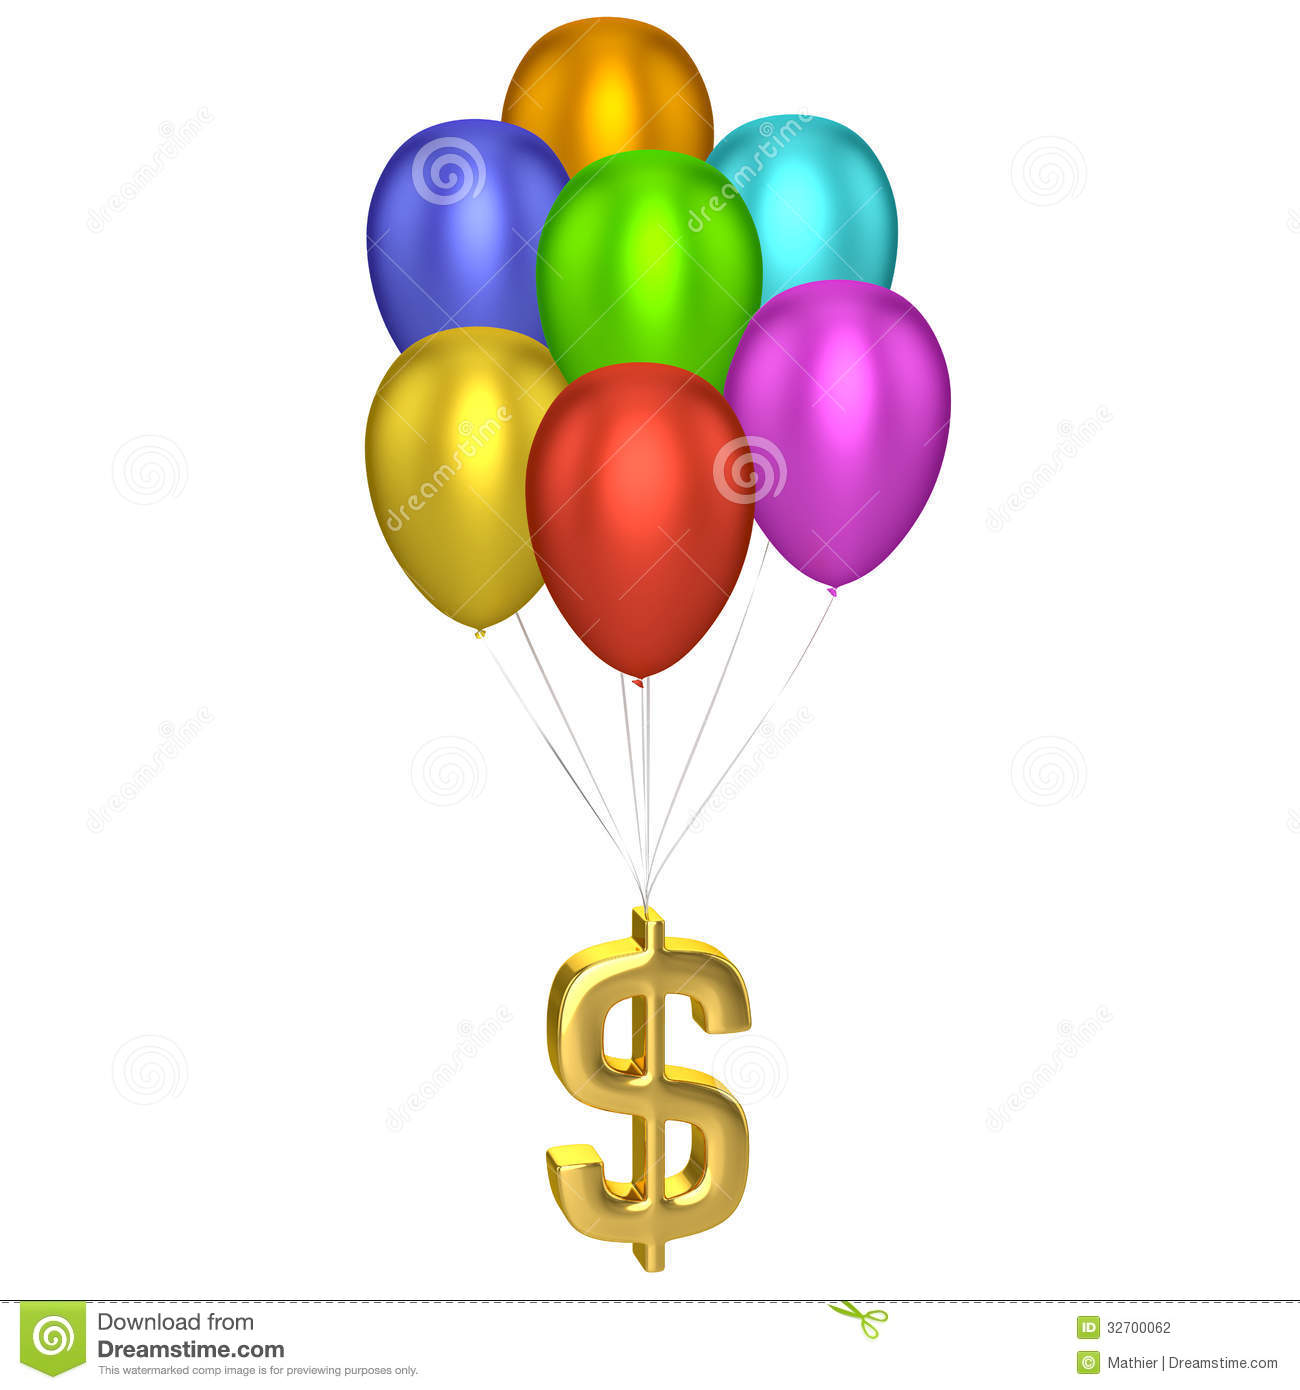 Dollar Sign With Balloons Stock Photography - Image: 32700062 Balloons Transparent